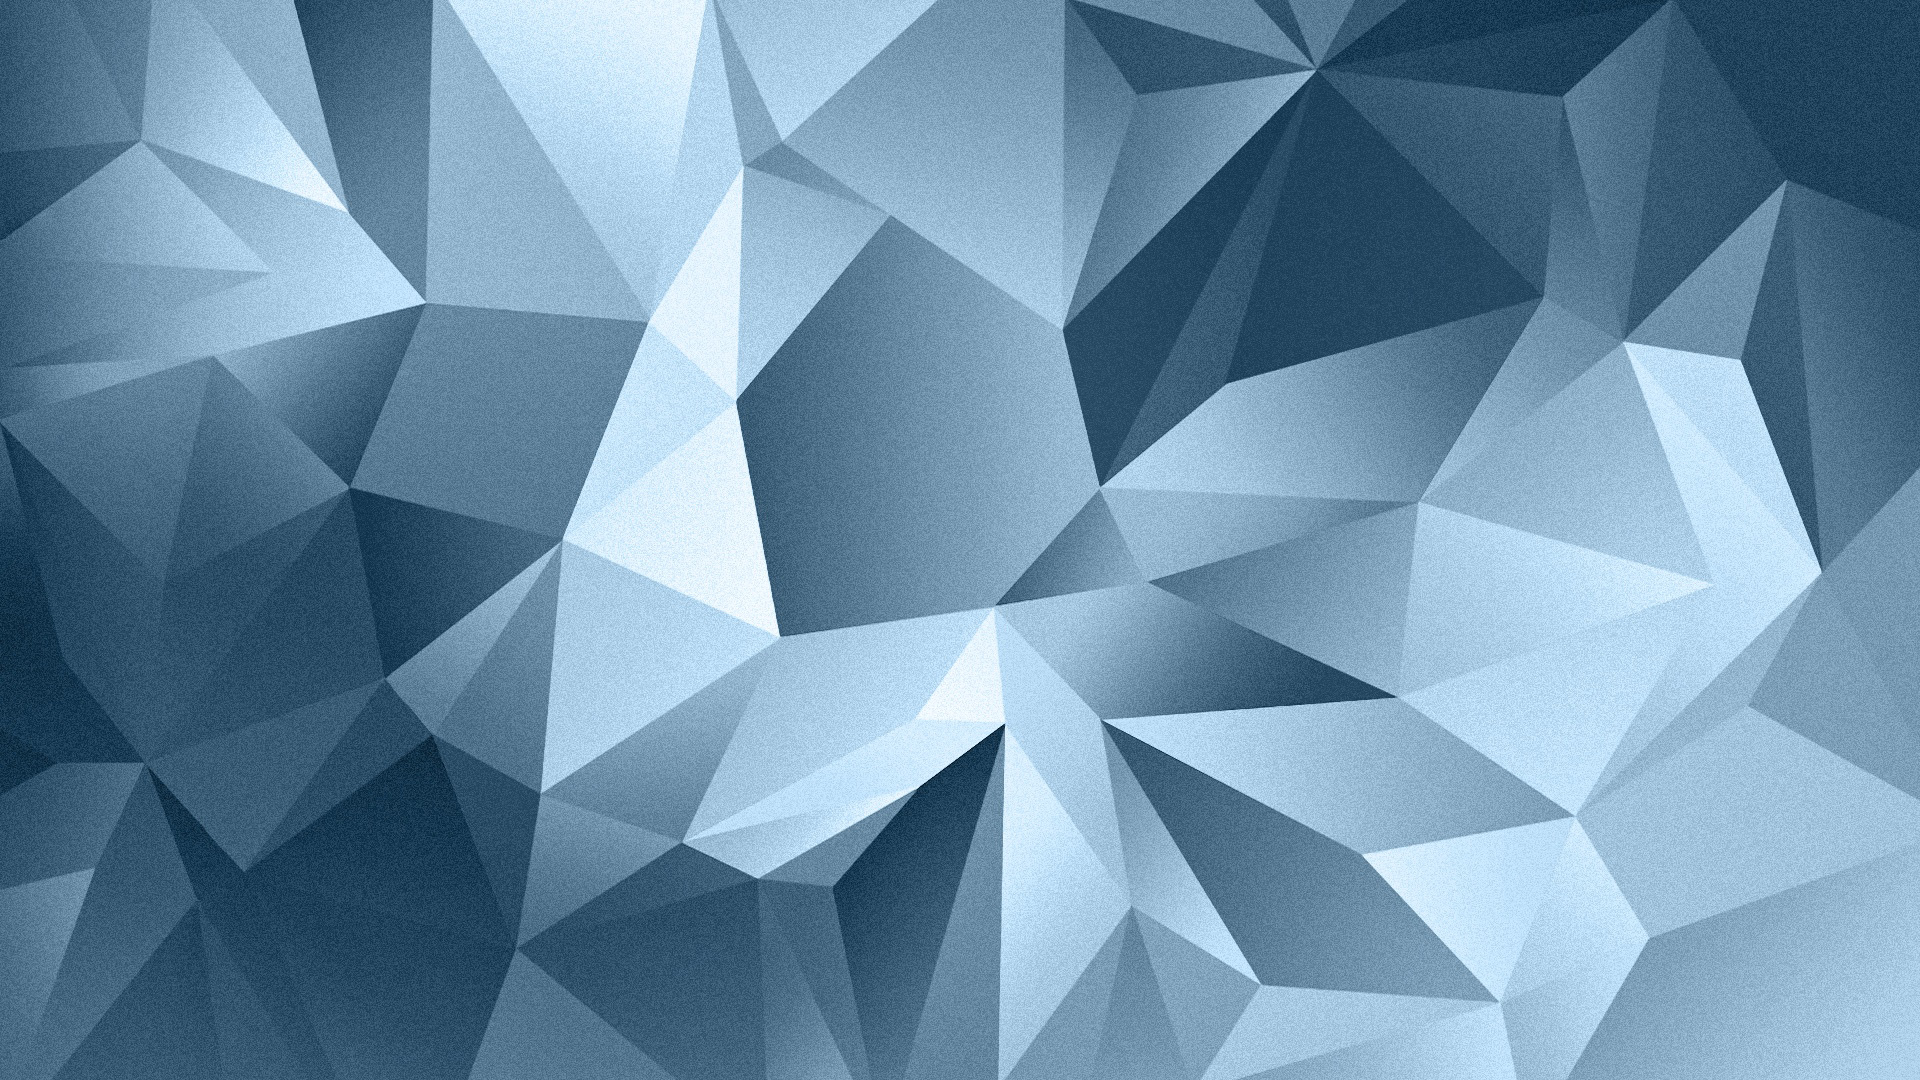 Diamond Shape Wallpaper on Lines Shapes And Designs